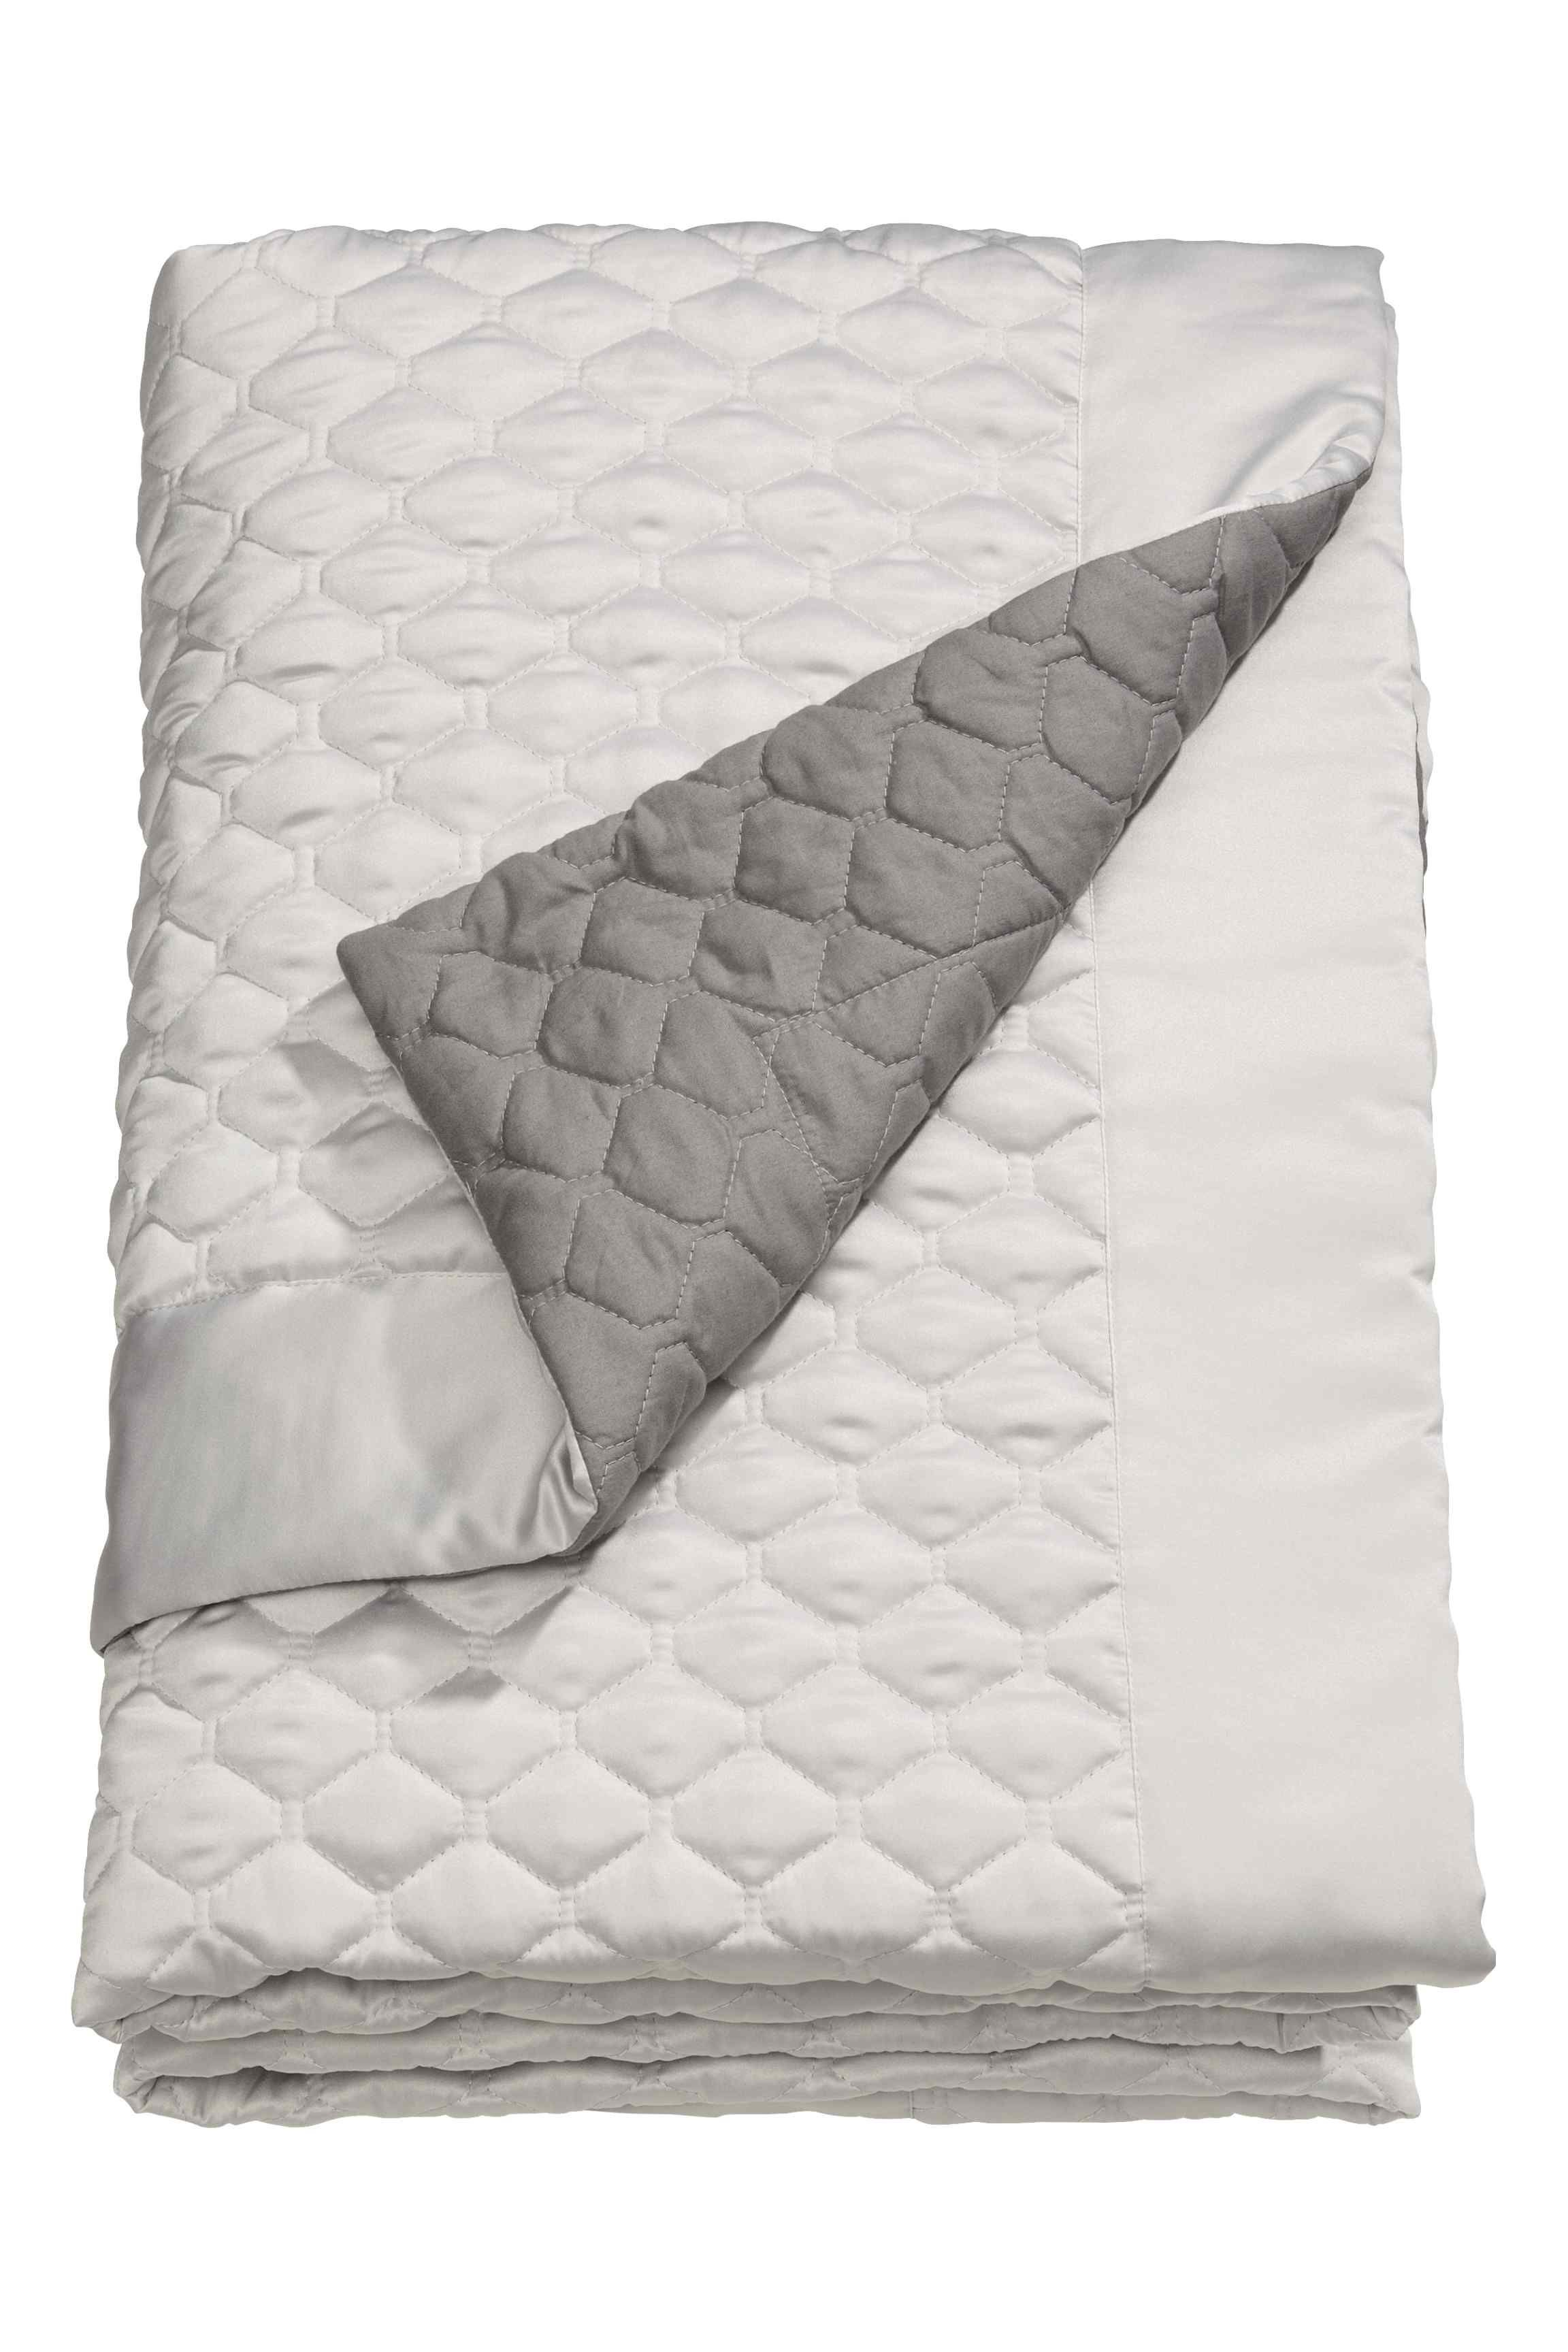 Tagesdecke Grau Quilted Bedspread Single Don T Touch My Stuff Pinterest